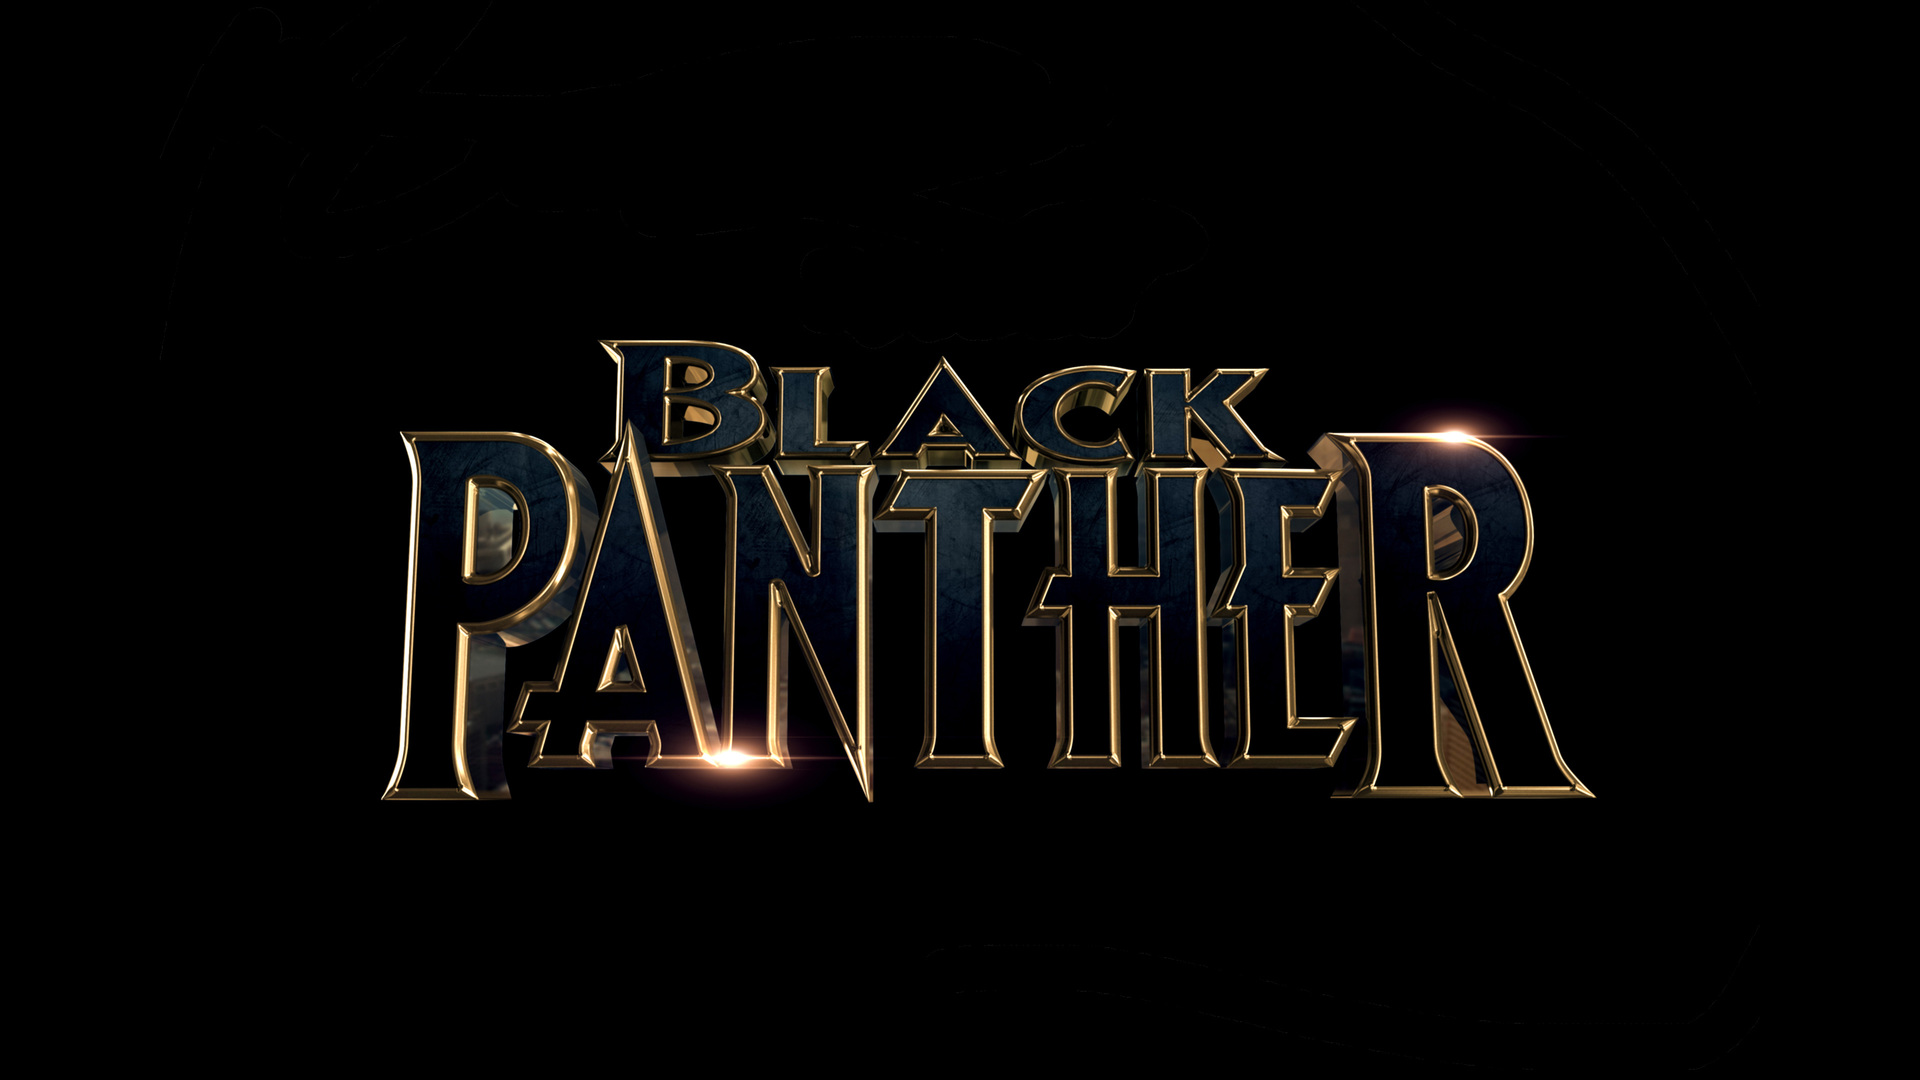 Amazing Wallpaper Movie Laptop - black-panther-2018-movie-lu-1920x1080  Best Photo Reference_591329.jpg